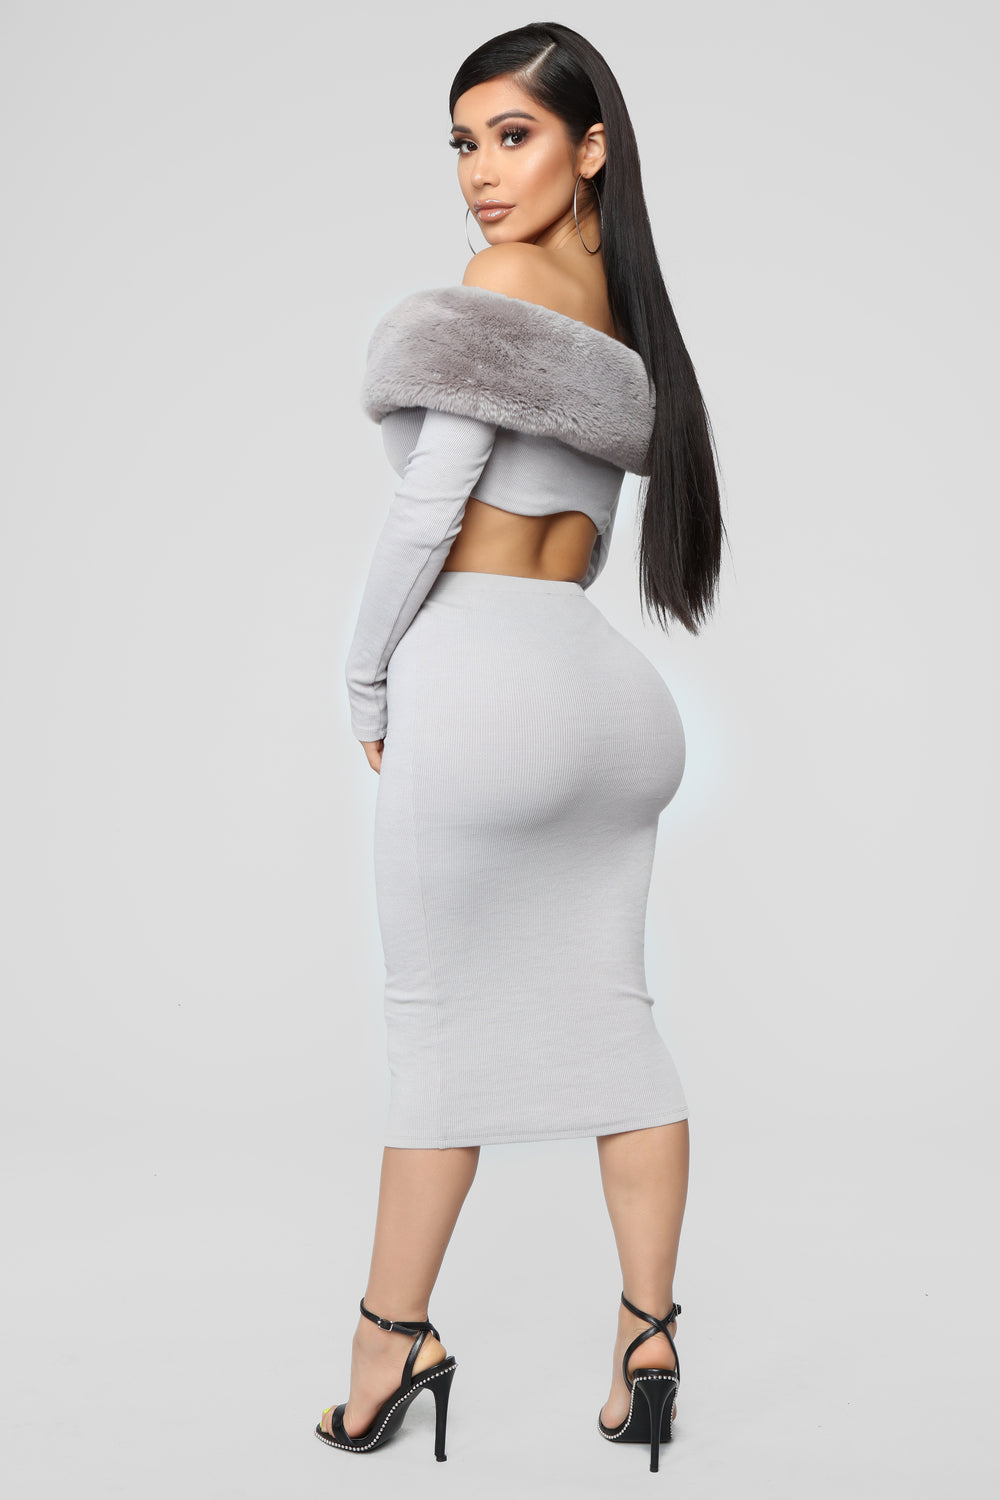 Moscow Moves Skirt Set - Grey